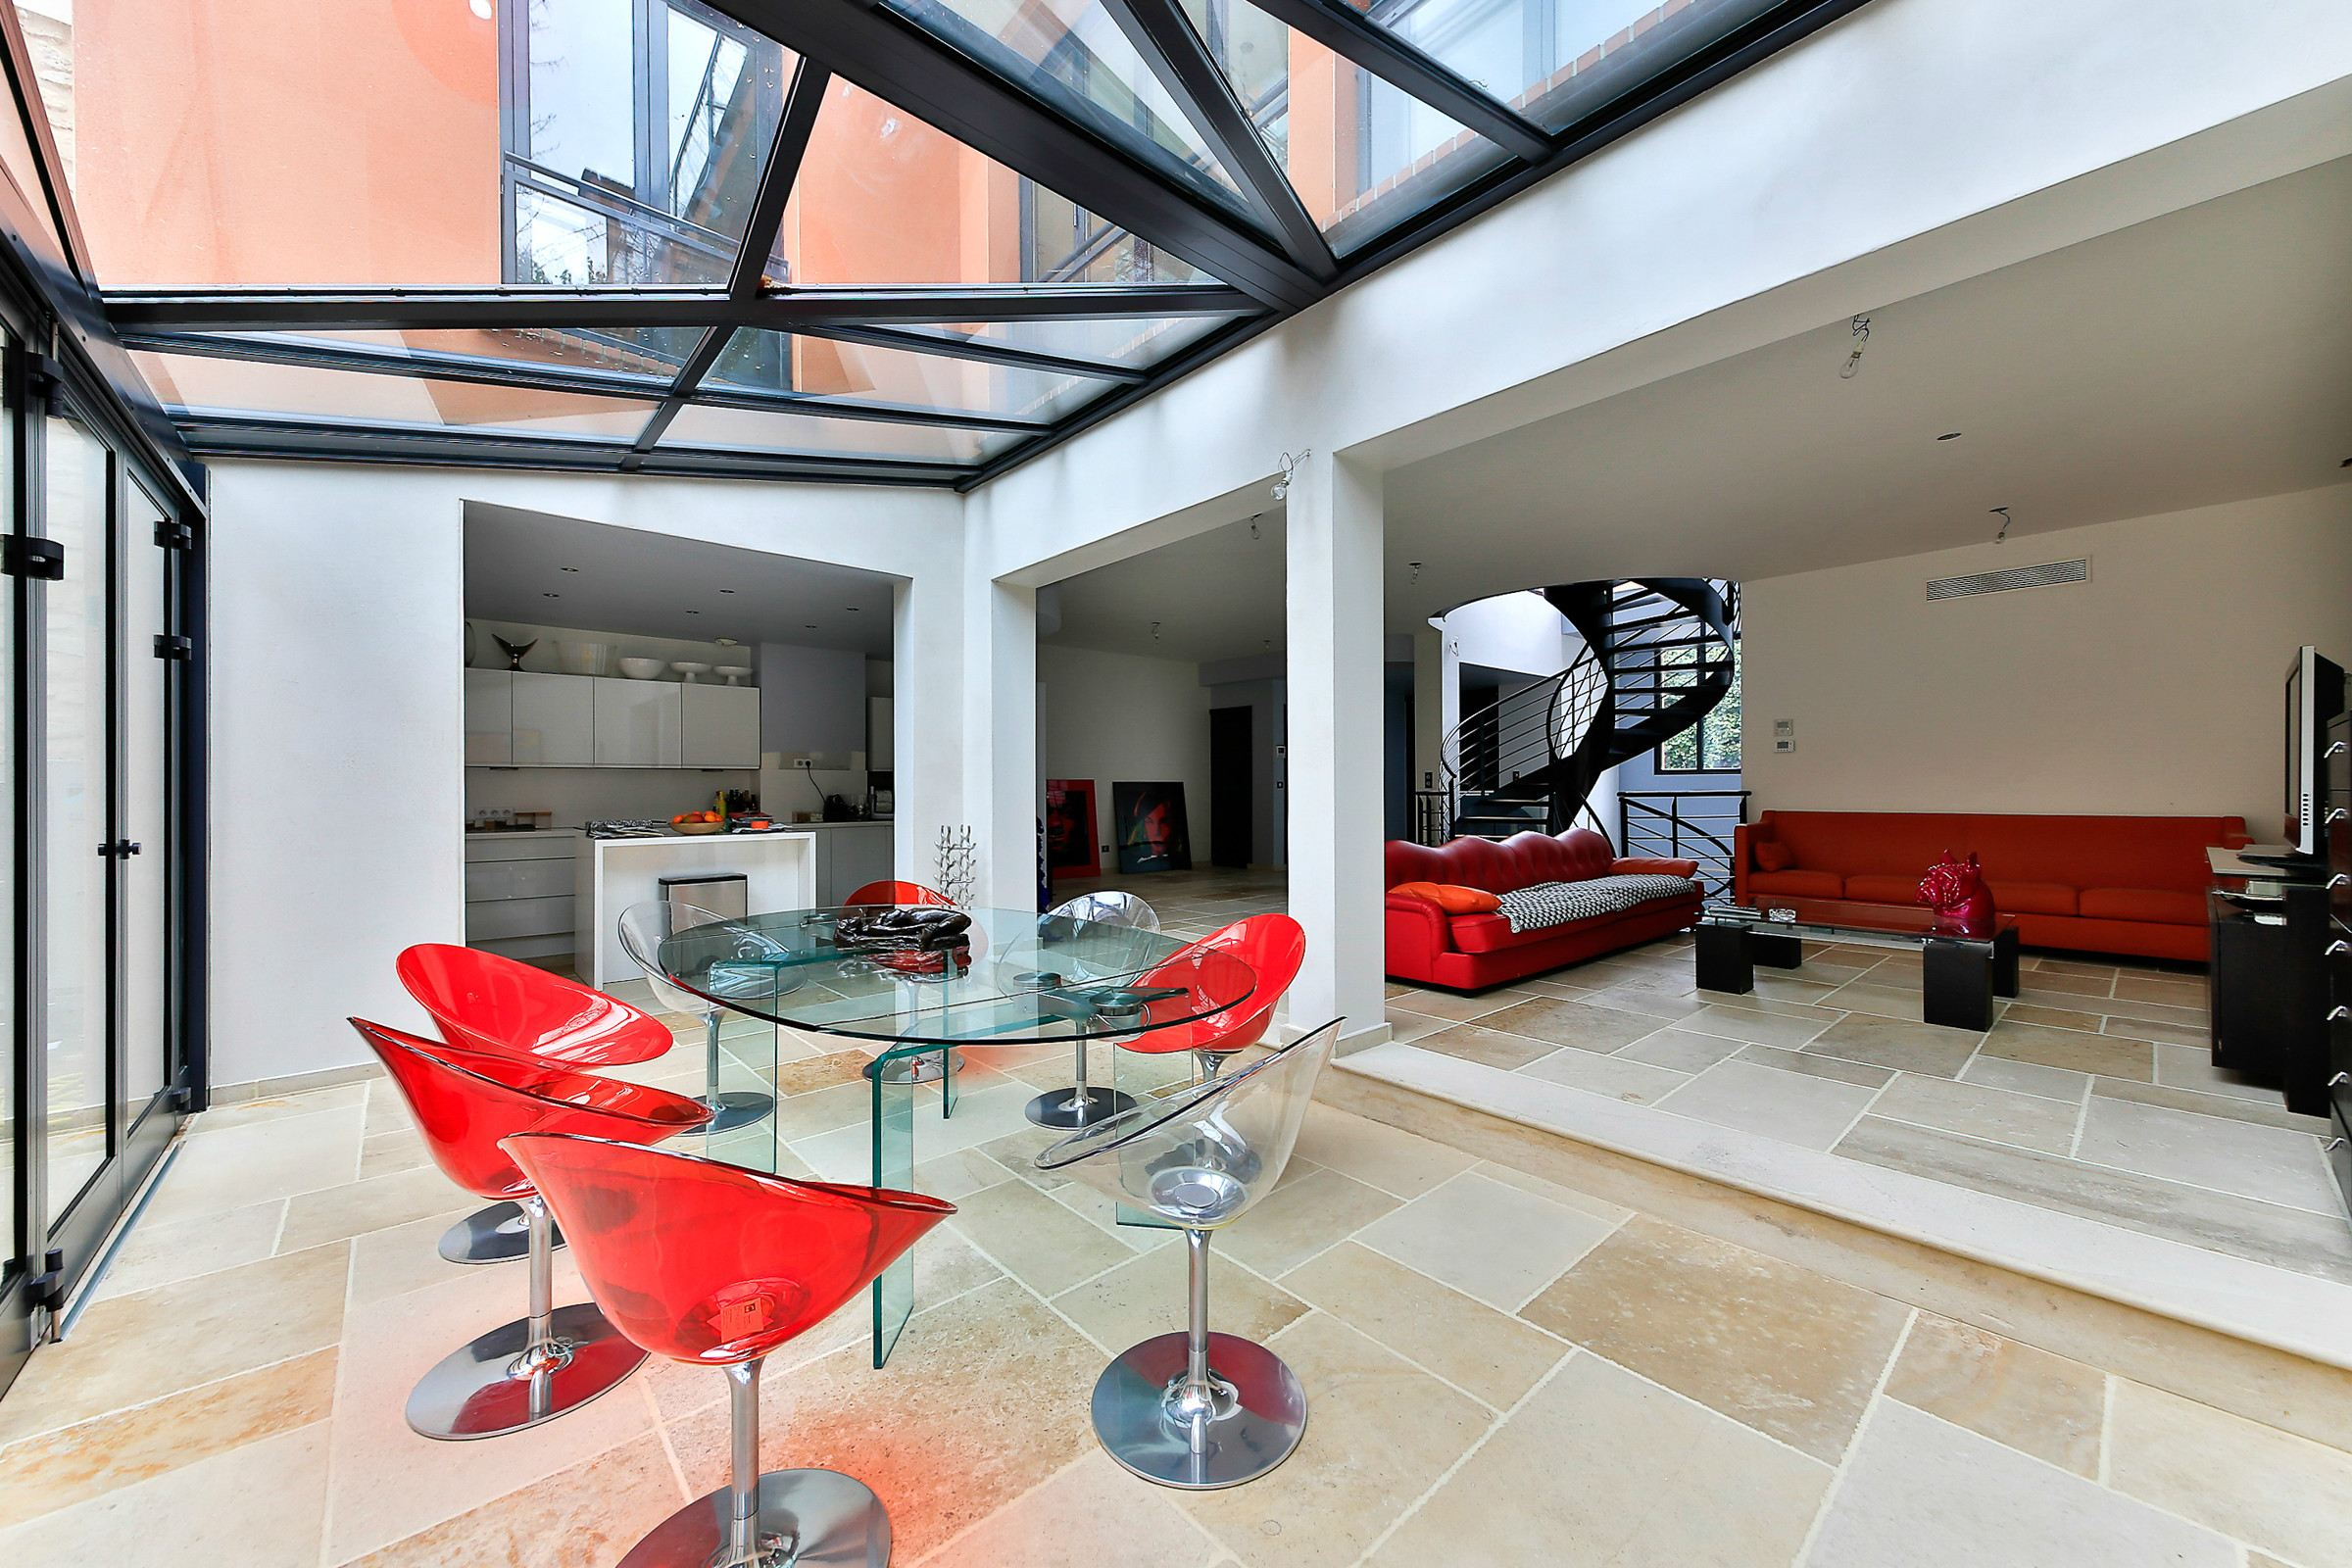 Property For Sale at Paris 14 - Parc Montsouris. Sublime TownHouse with garden